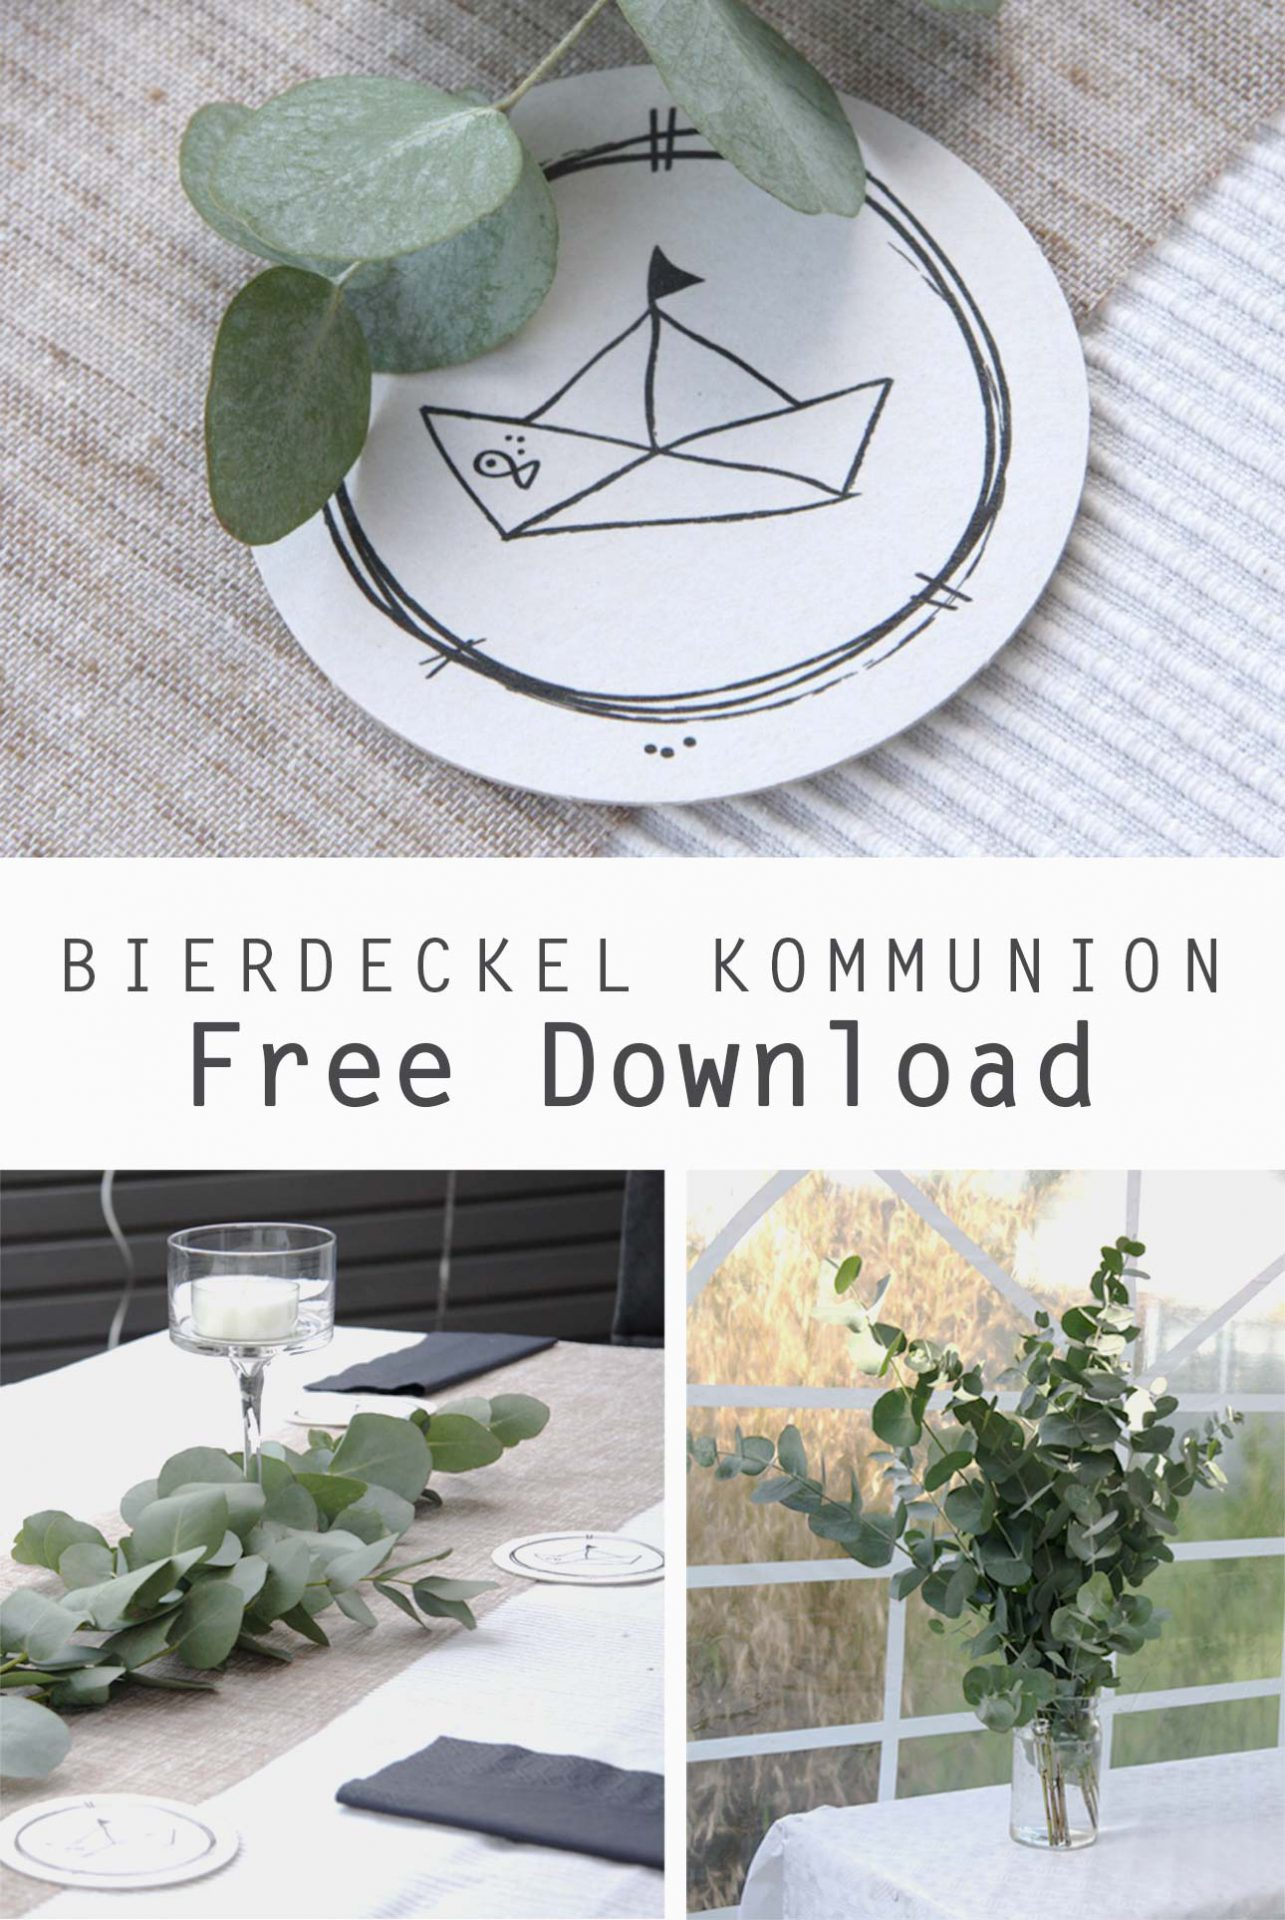 Kinderkommunion Bierdeckel free Download